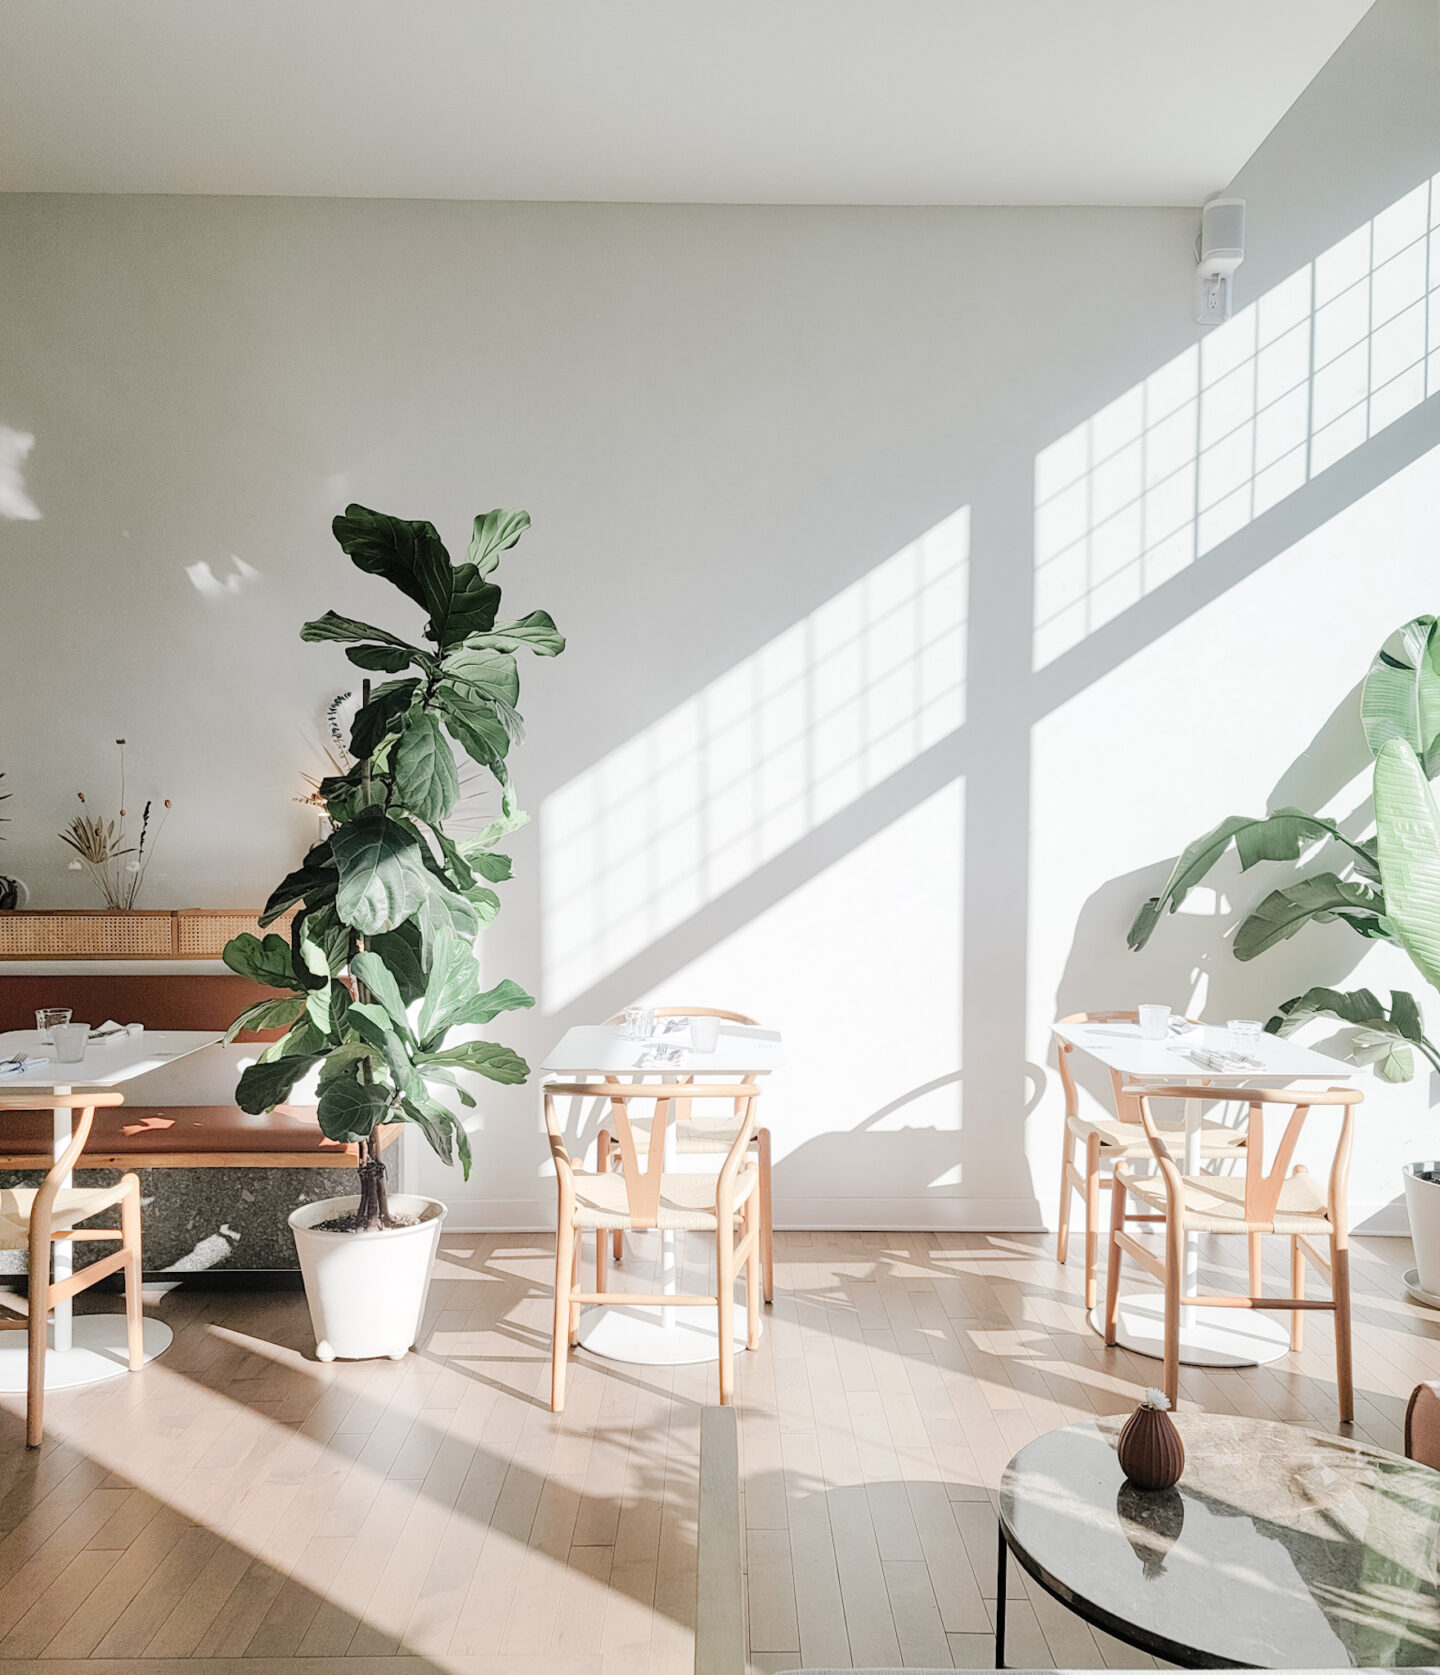 New Coffee shops in Montreal